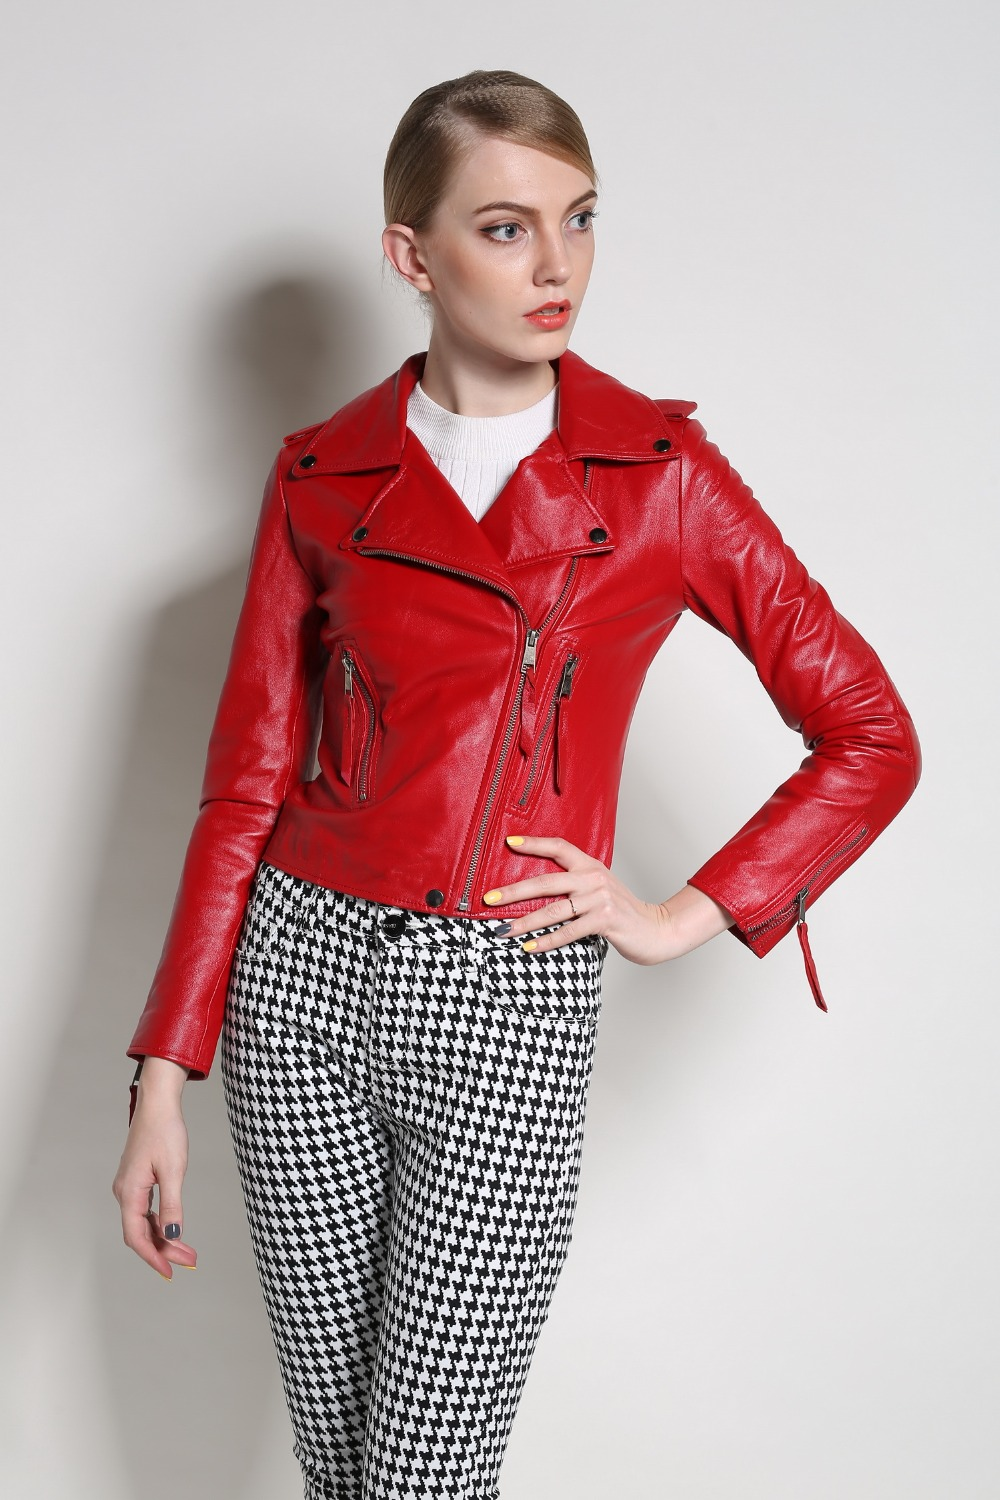 Women Real leather jackets and coats Genuine leather jacket New 2016 autumn motorcycle sheep Biker Red black S-3XL top quality dhl free shipping top brand warm a1 clothing man 100% vintage italy leather jackets thick men s genuine leather biker jacket